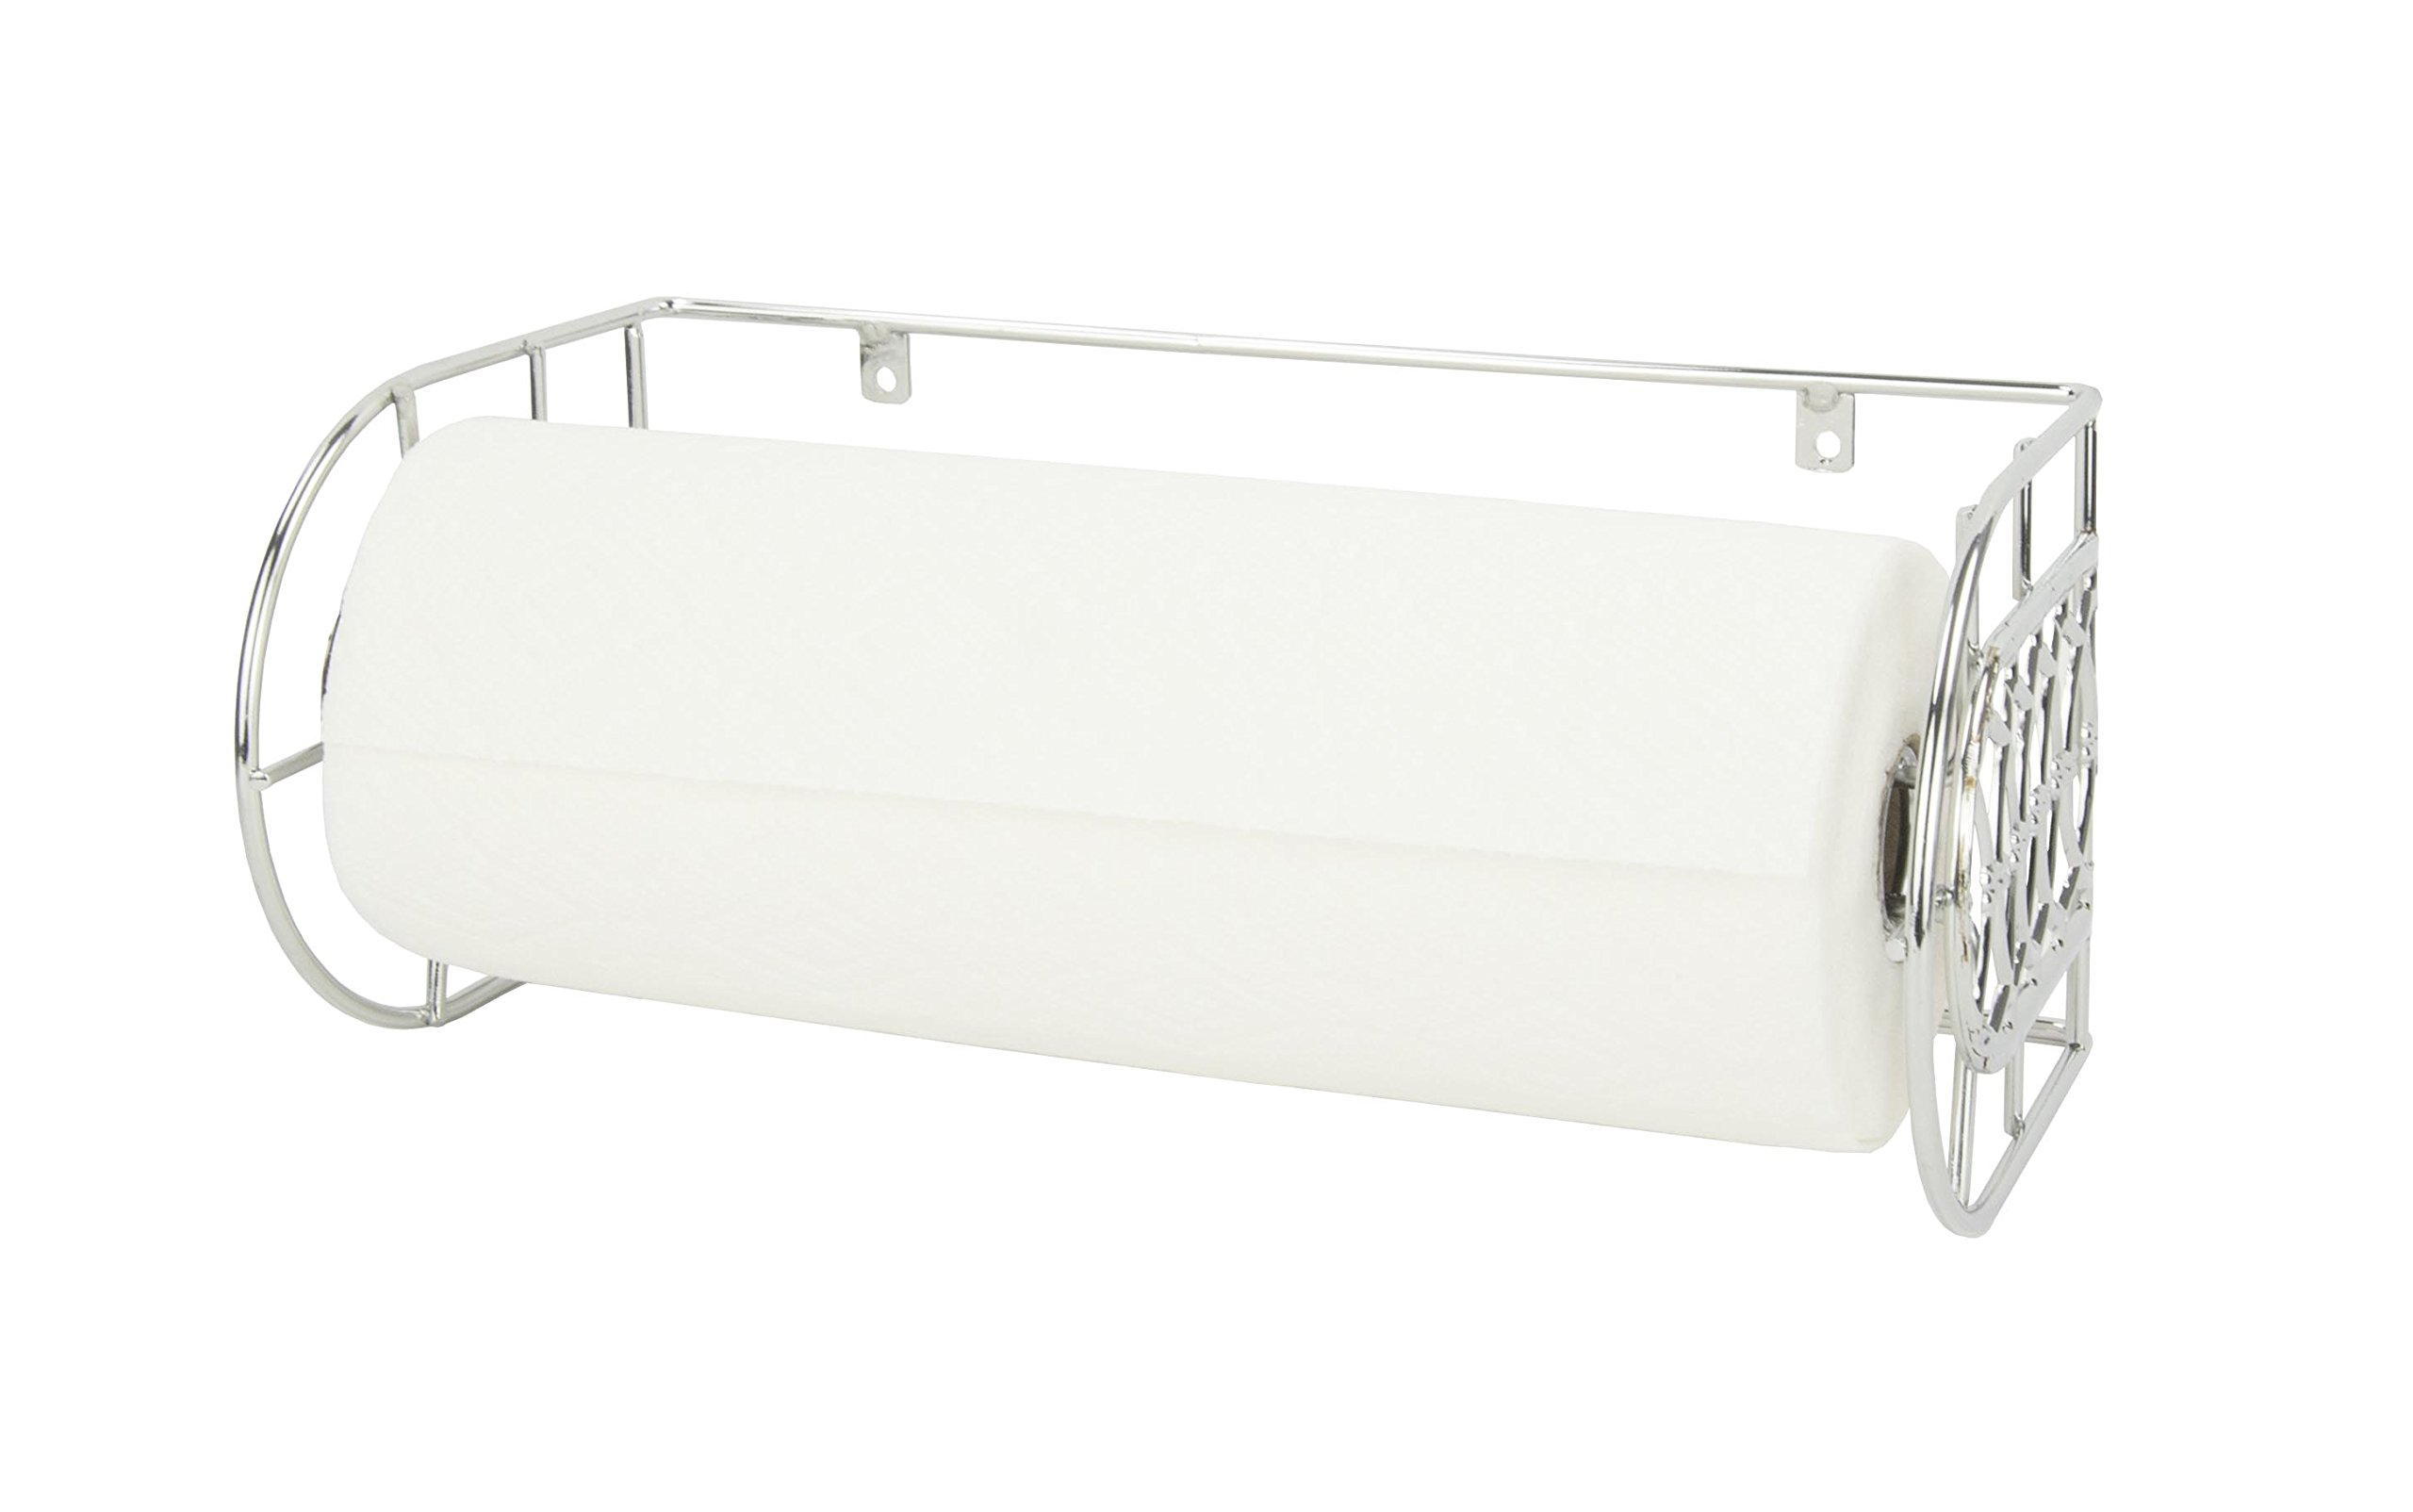 Home Basics Infinity Collection Wall Mounted Paper Towel Holder, Silver Chrome